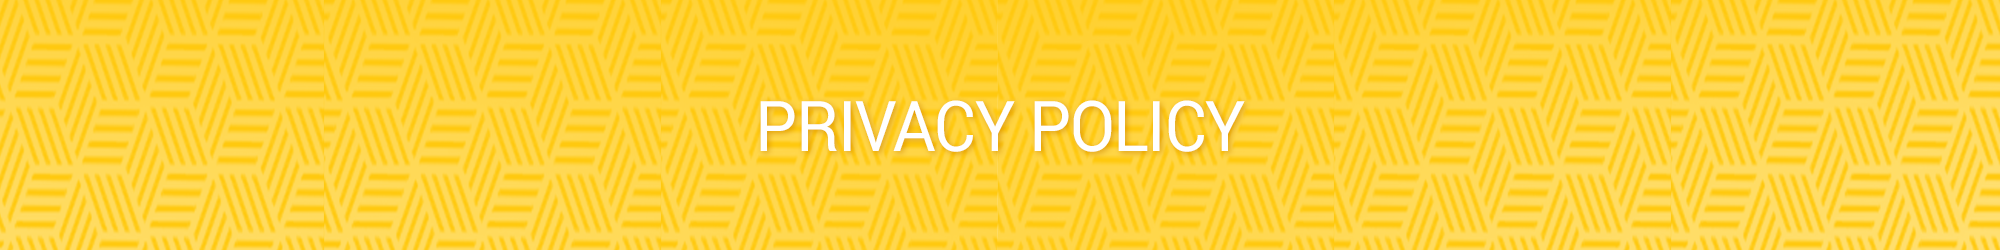 header-privacy.png